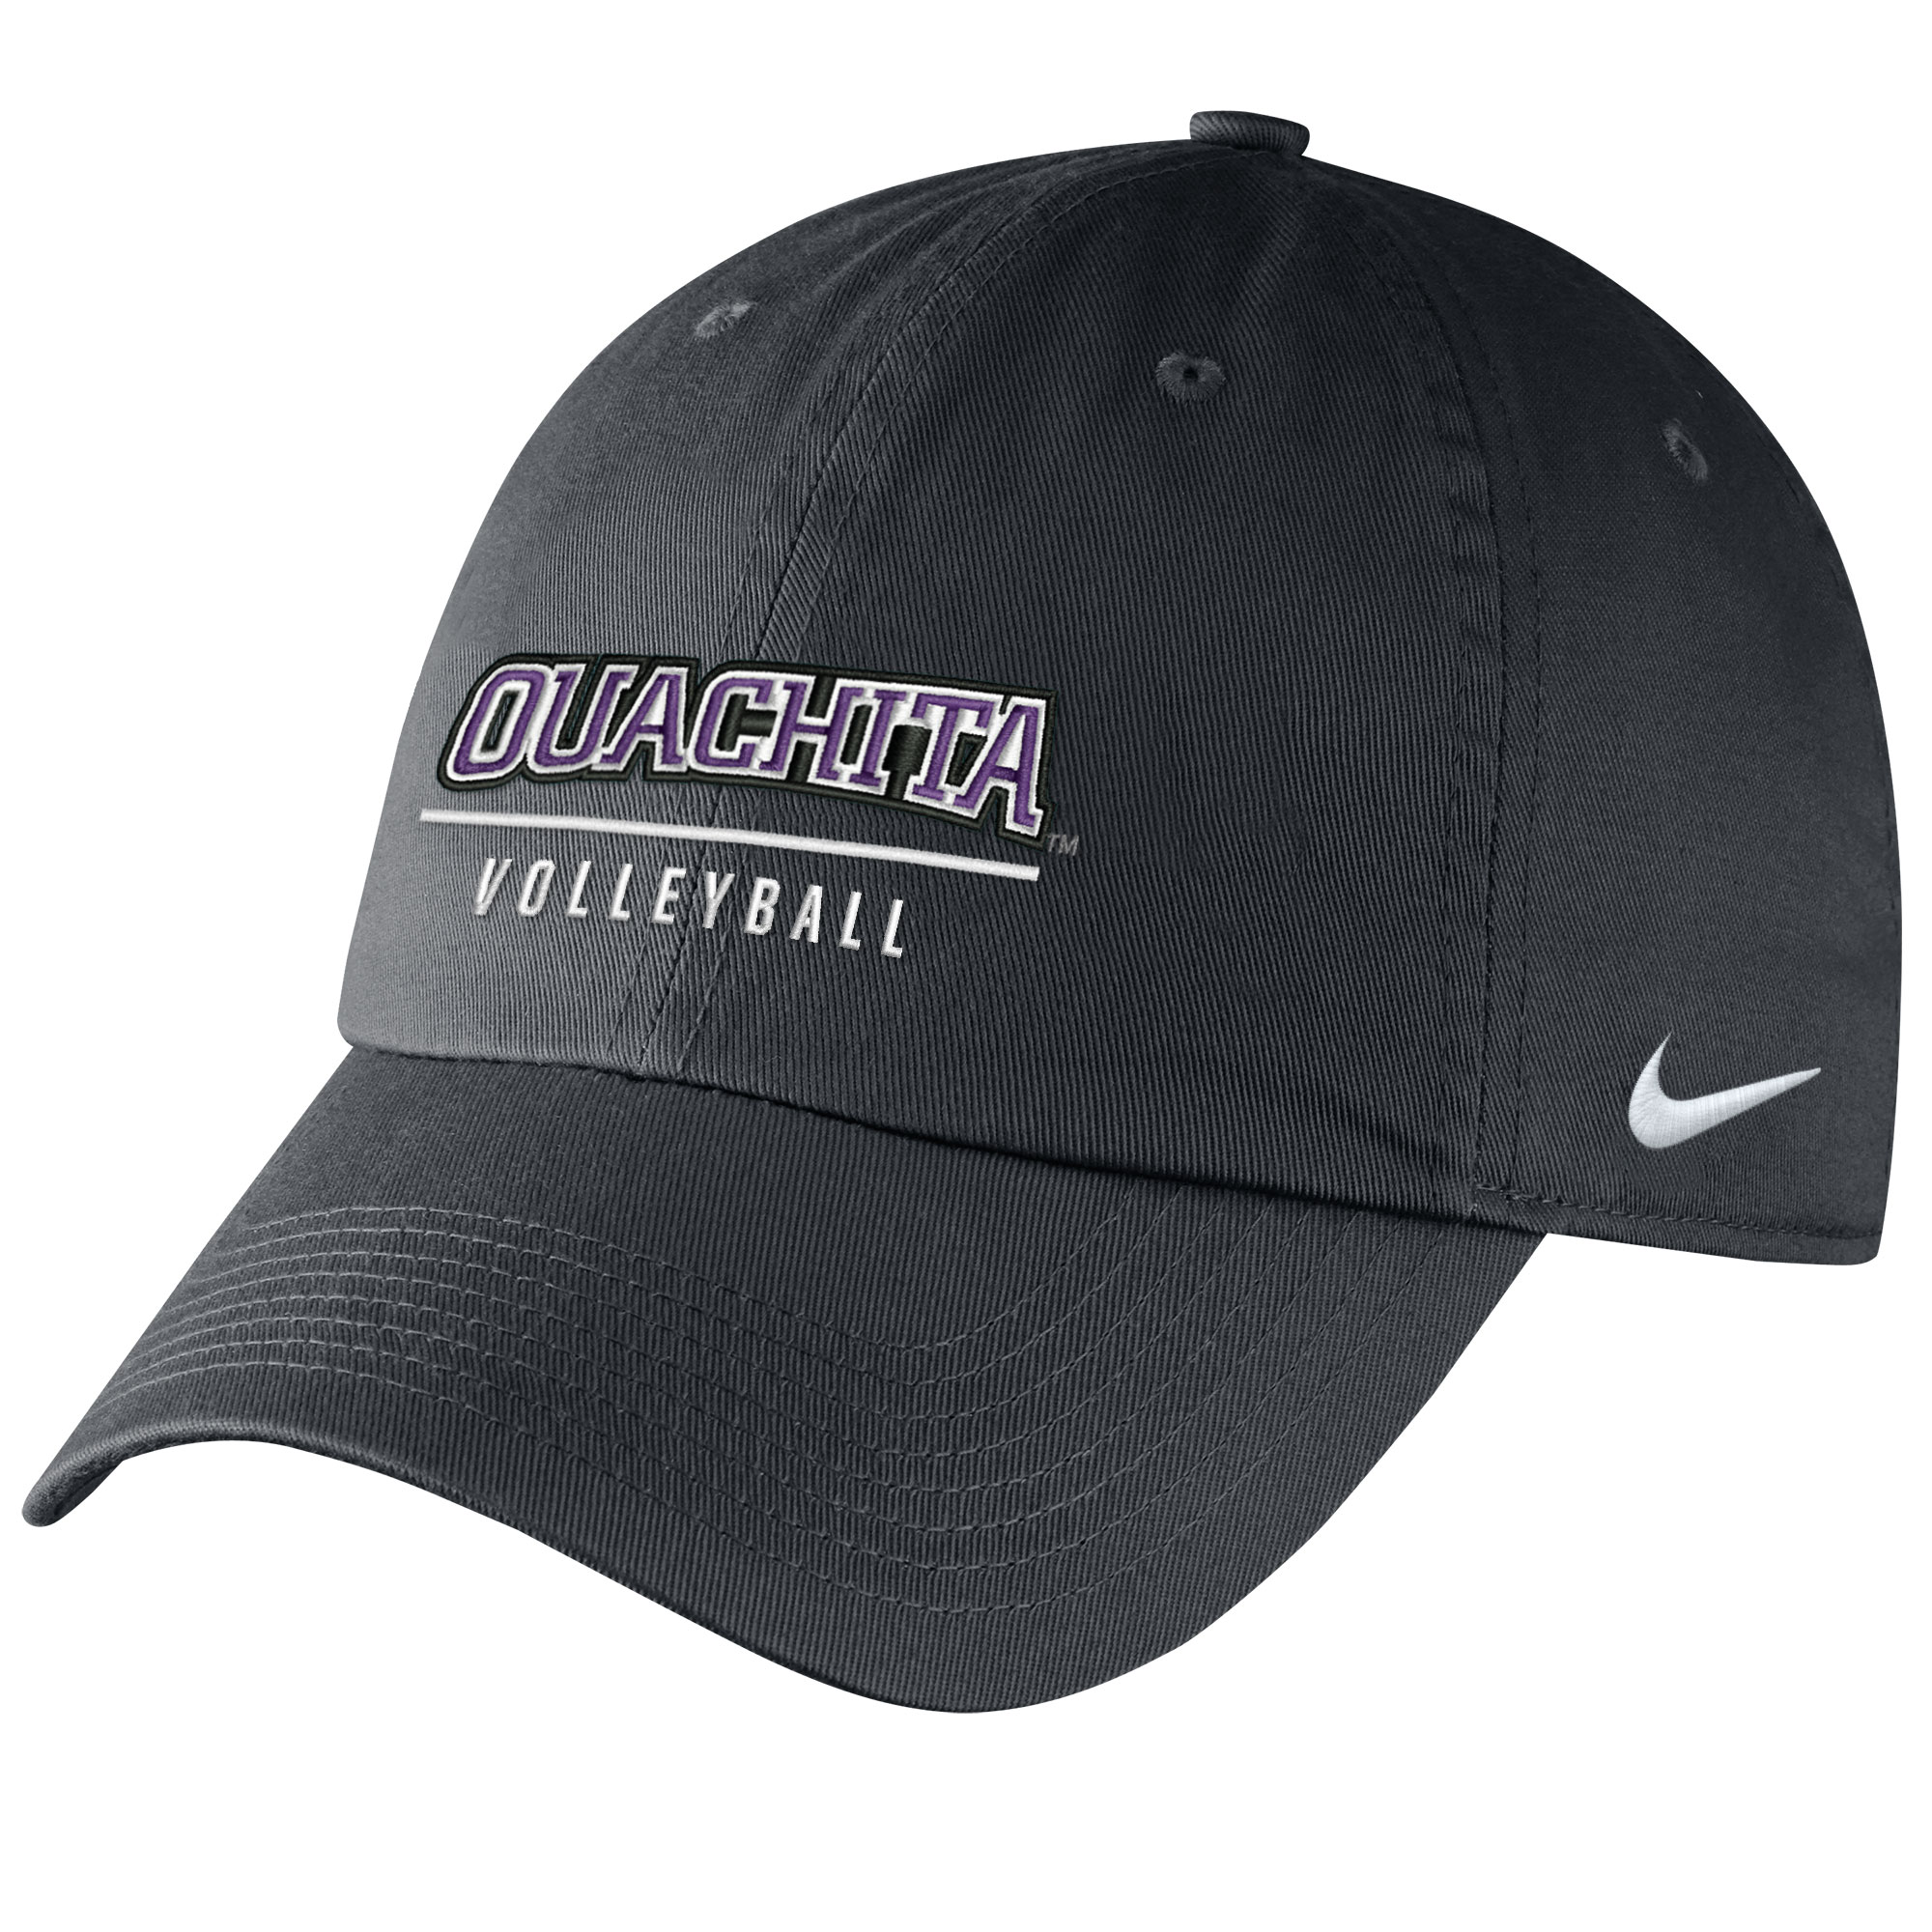 image of: OUACHITA VOLLEYBALL CAMPUS CAP